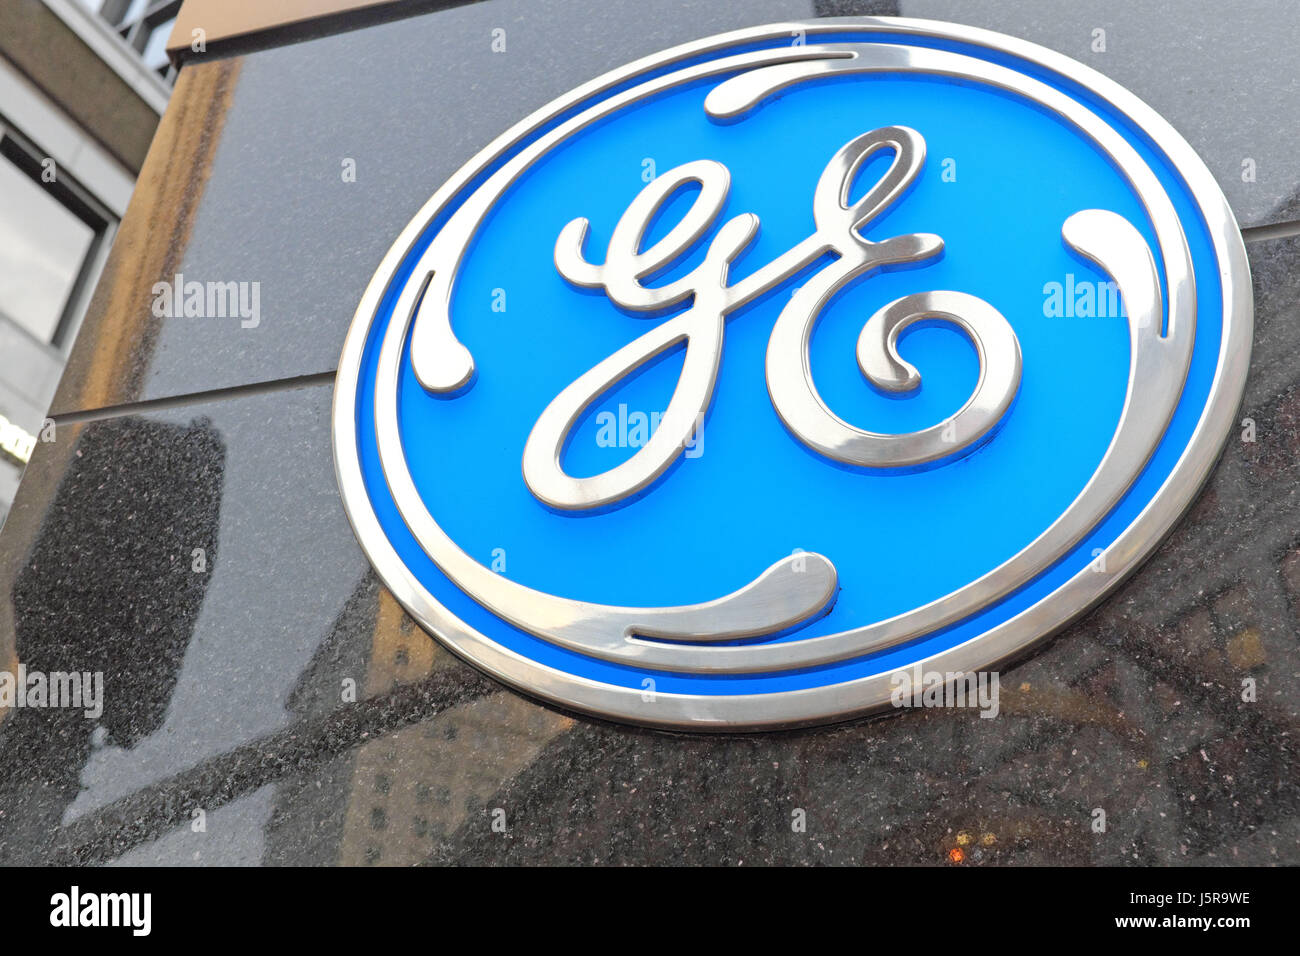 general electric logo on an outdoor marble structure indicating the